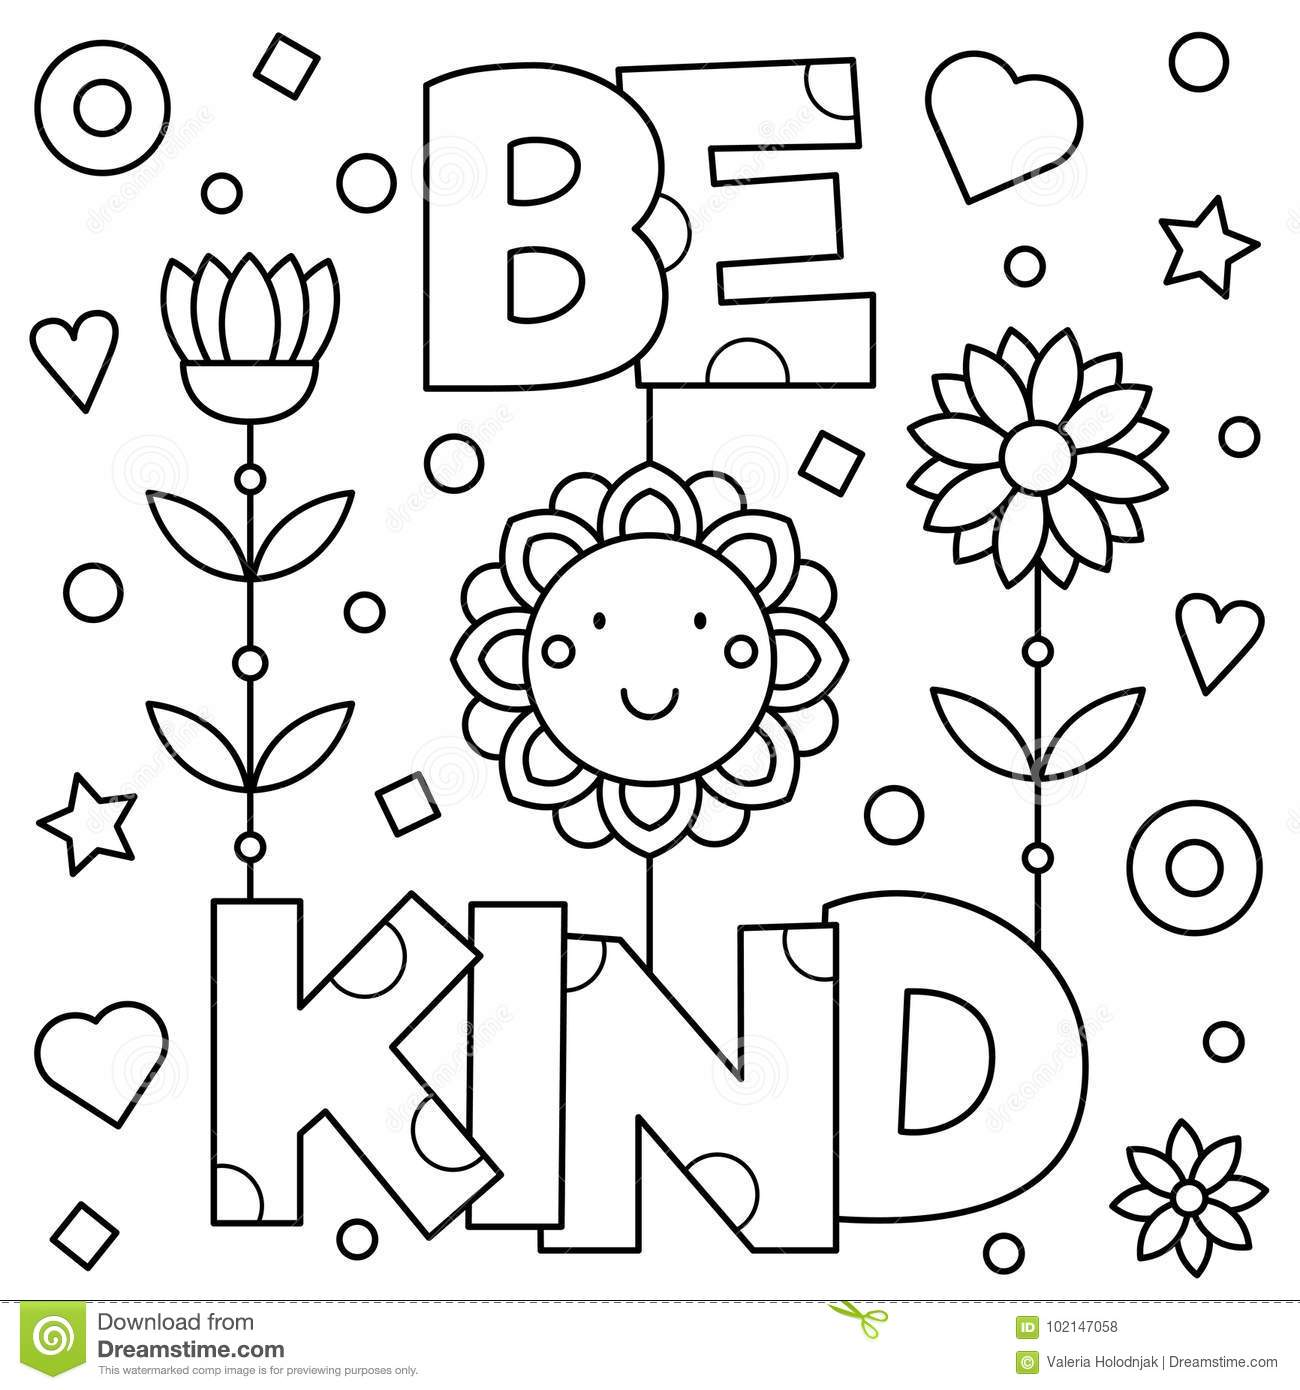 be kind coloring pages Be Kind. Coloring Page. Vector Illustration. Stock Vector  be kind coloring pages